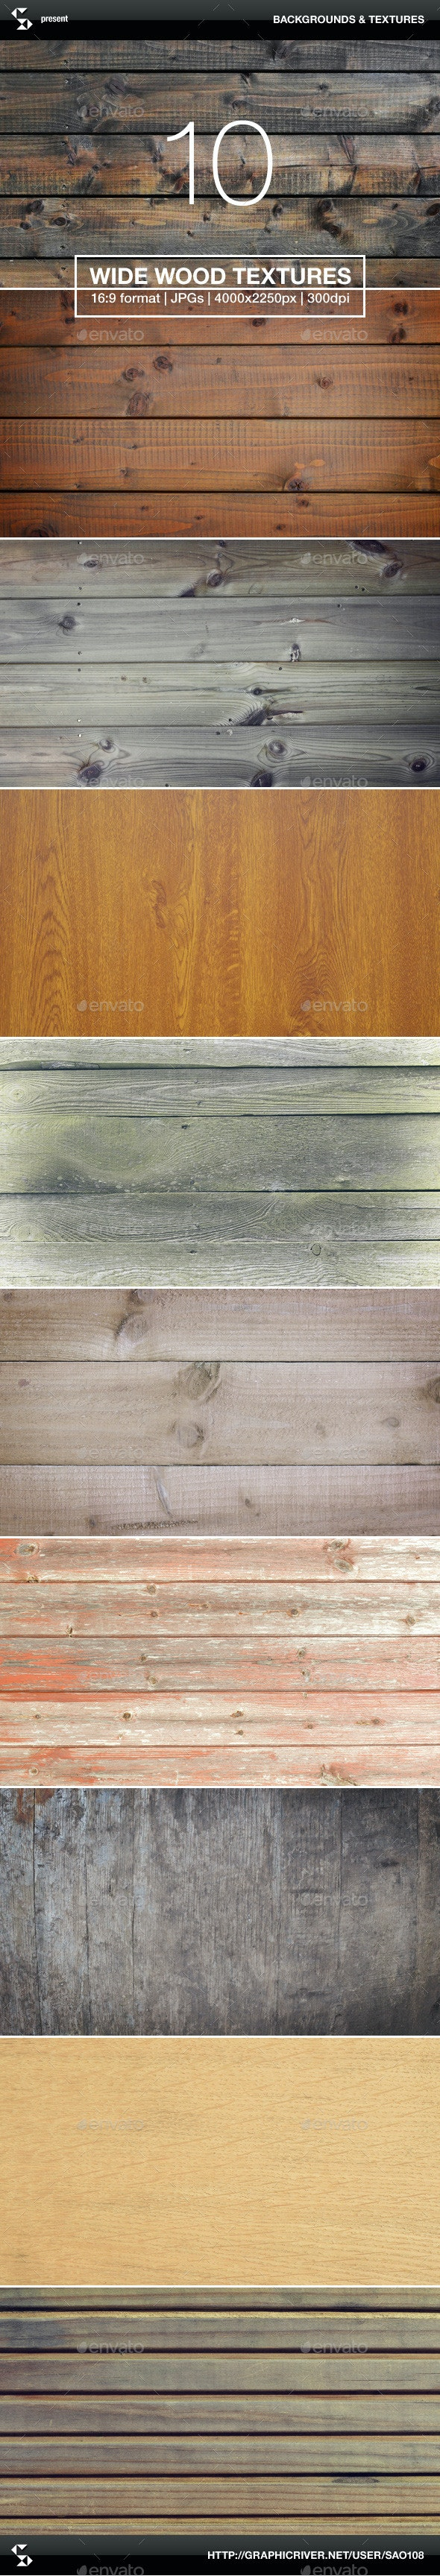 10 Wide Wood Textures - Wood Backgrounds - Wood Textures